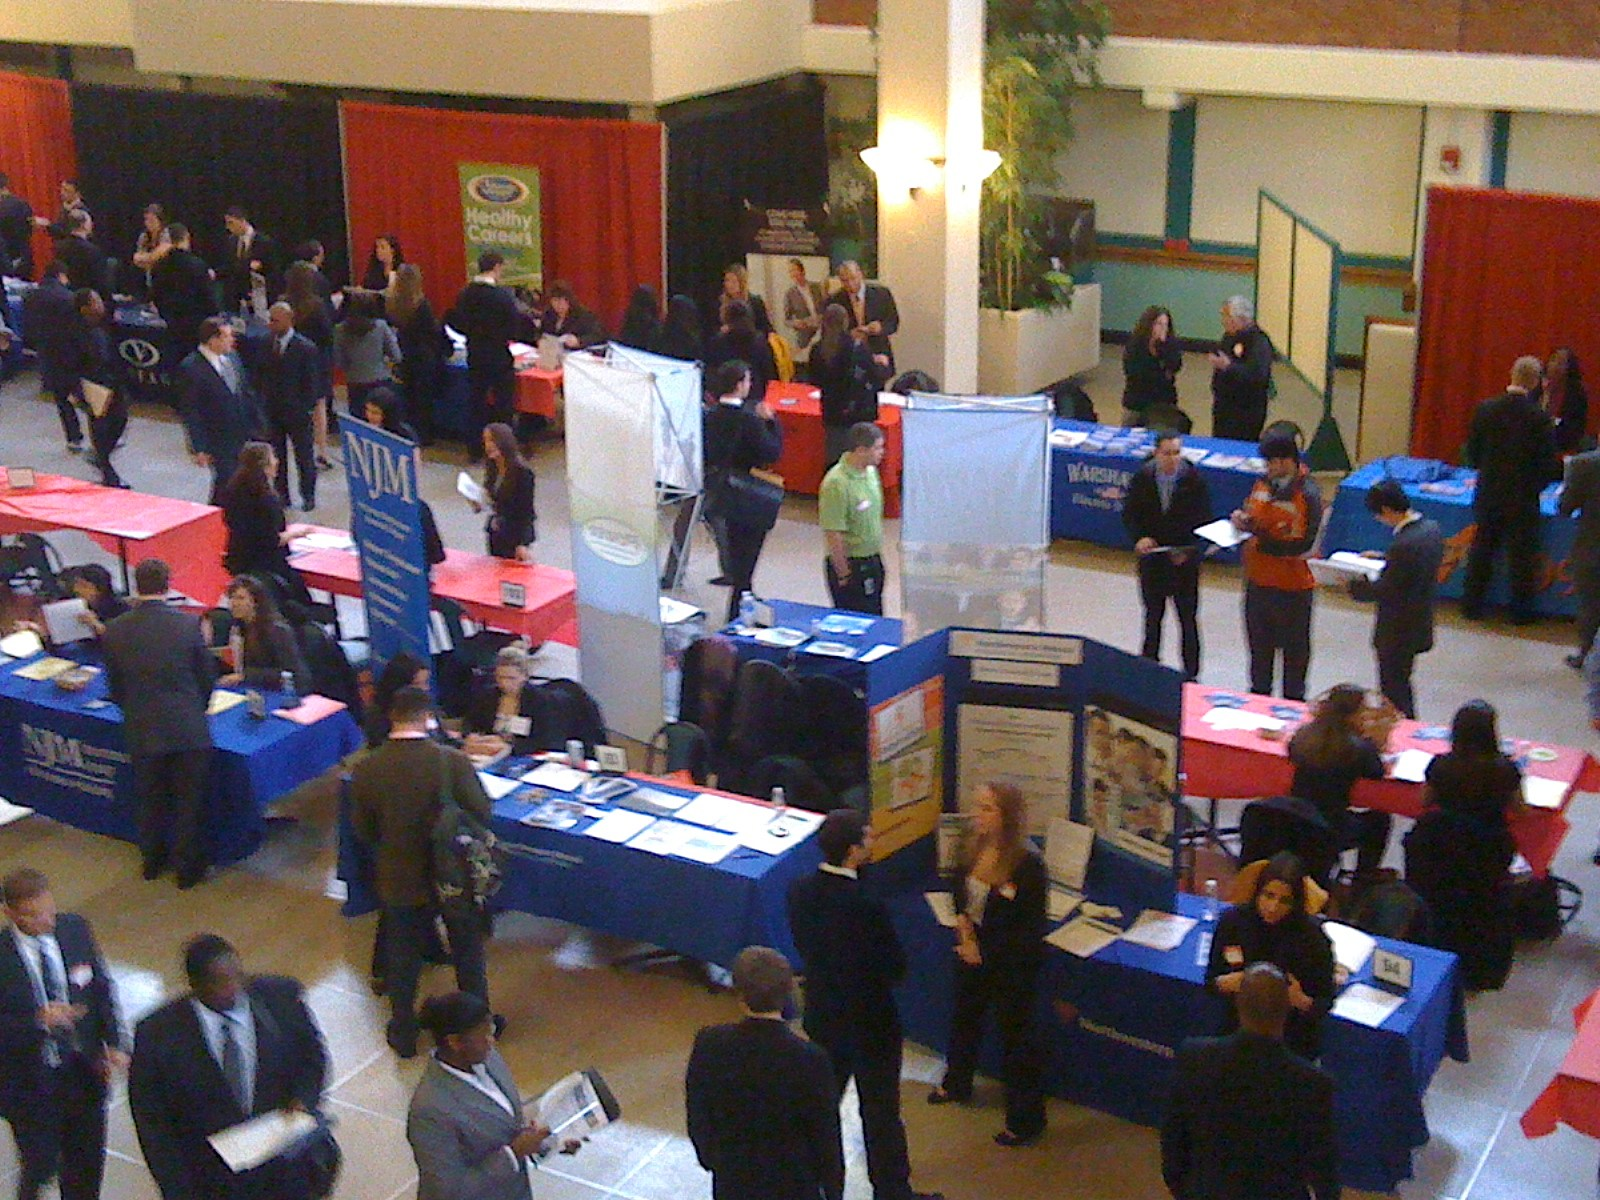 job fair packed as college grads look for work